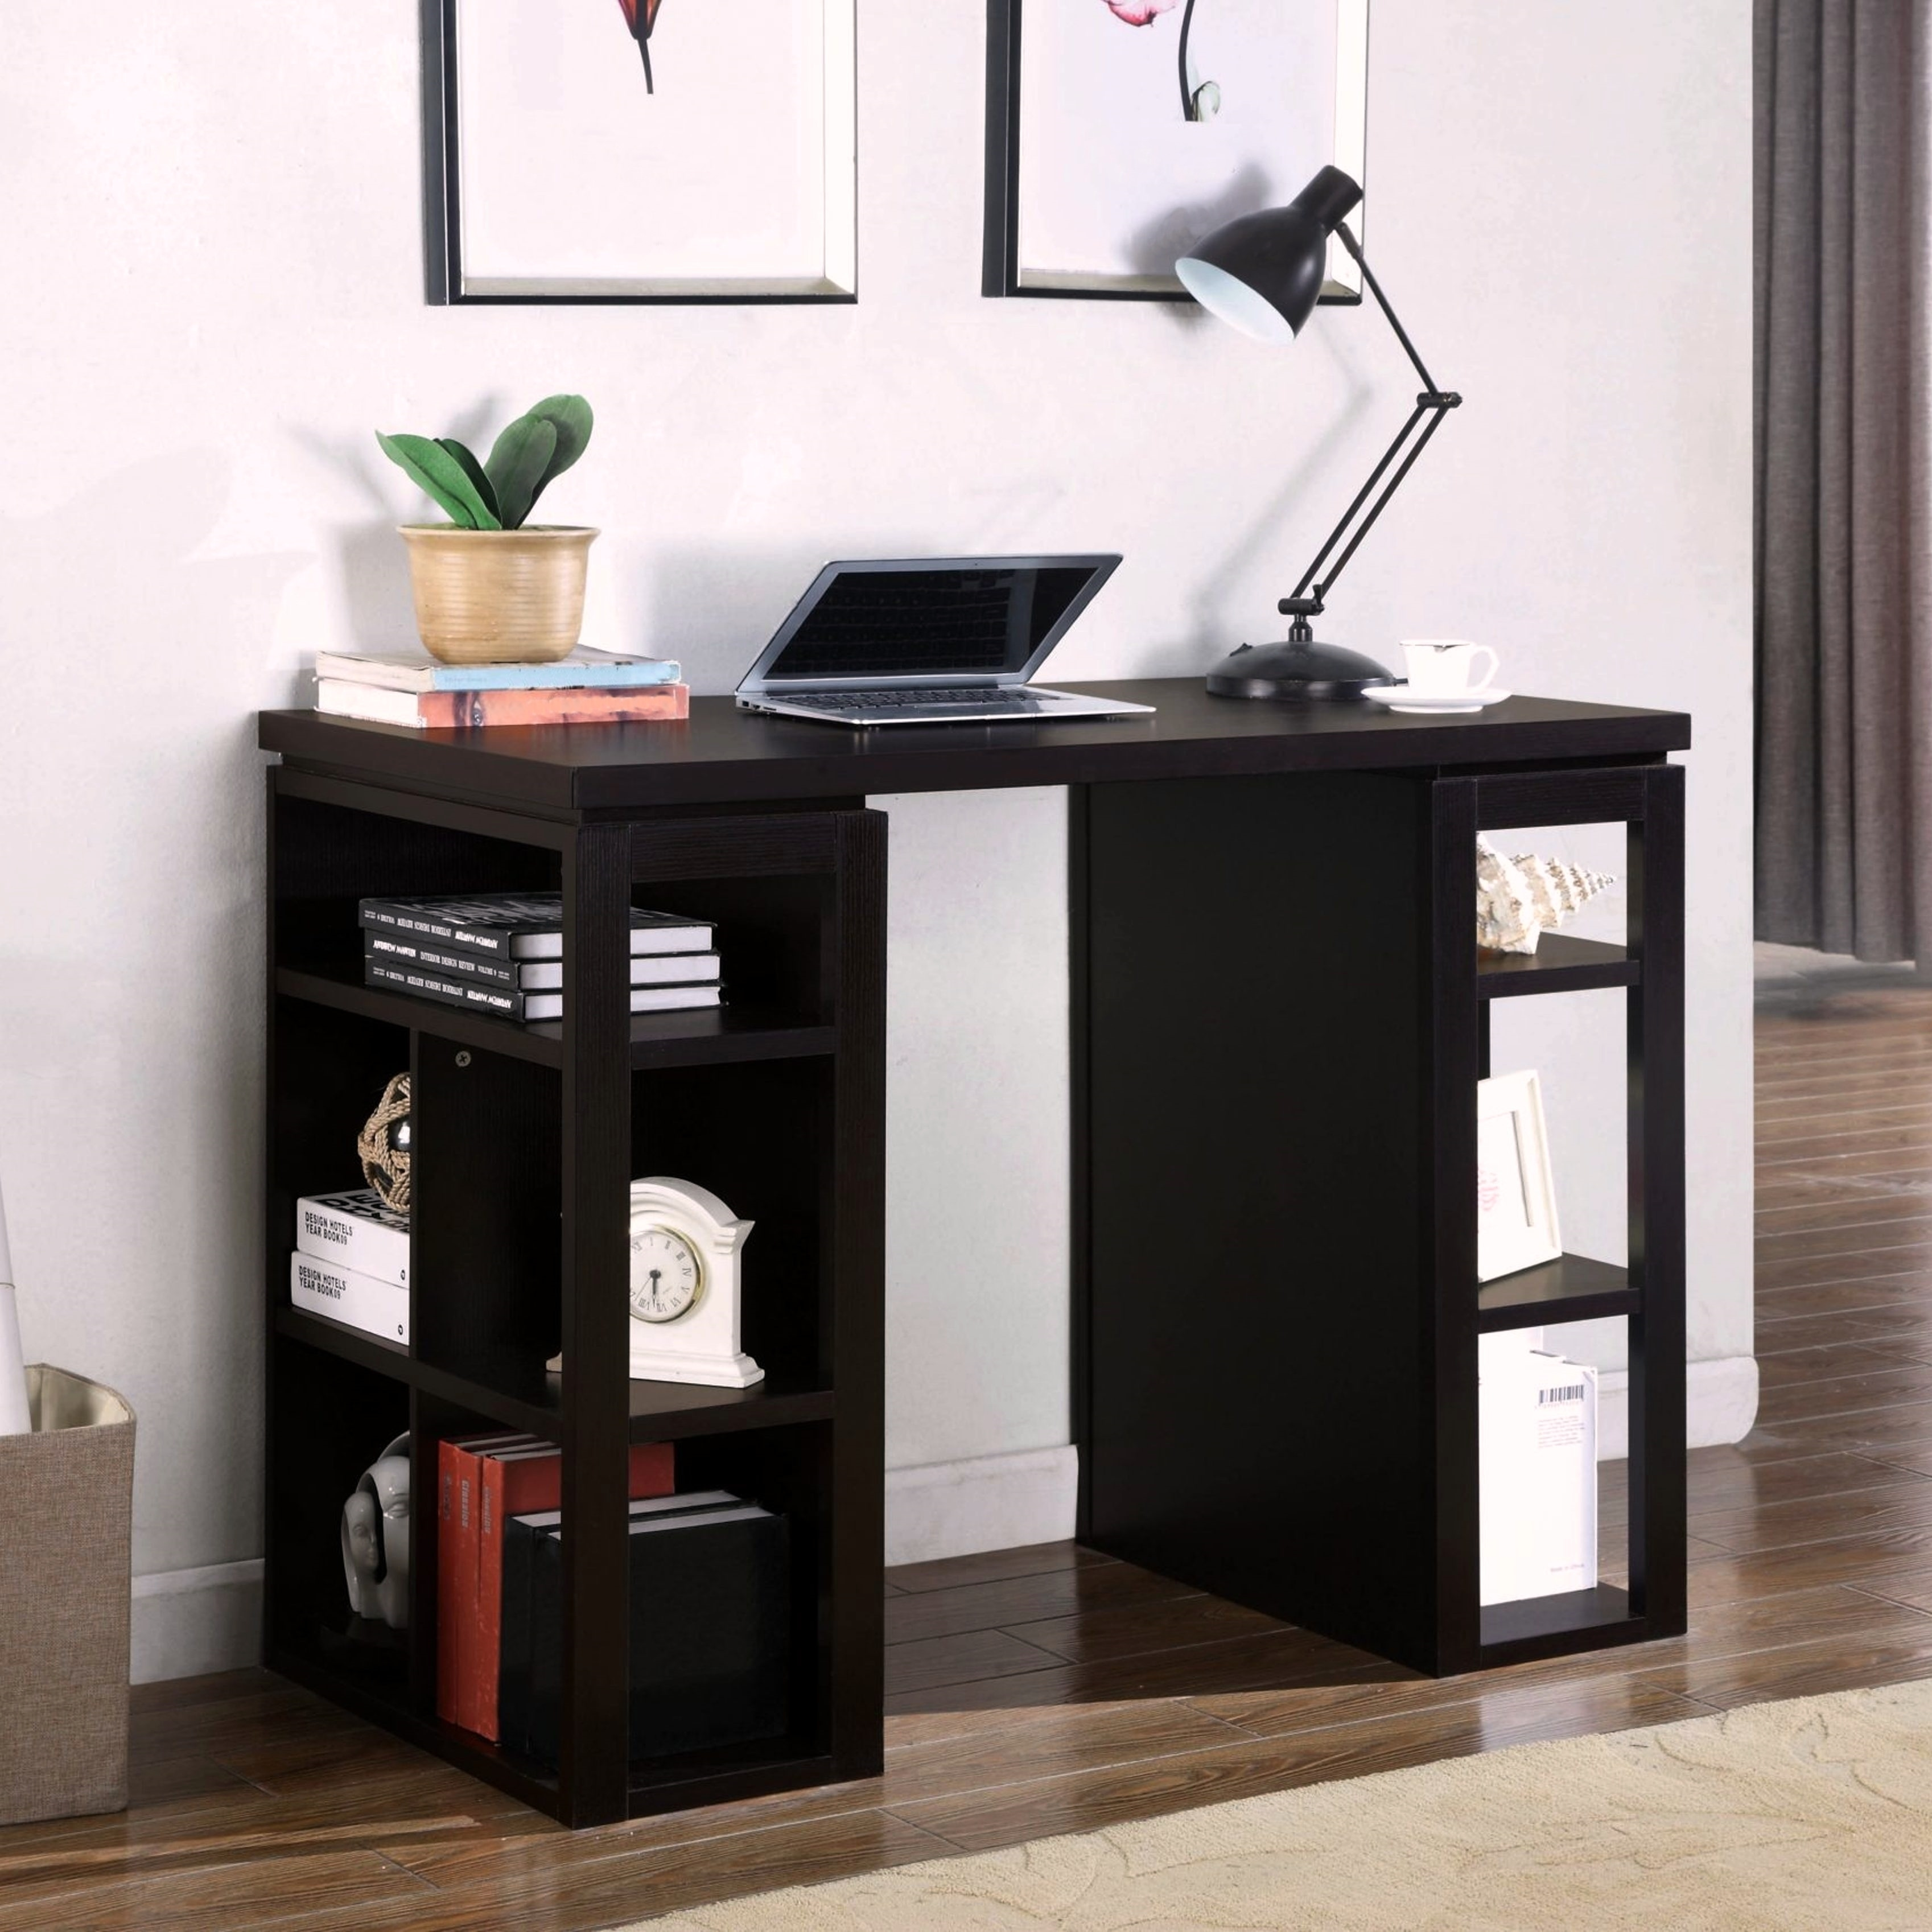 Modern Design Inch Counter Height Work Station Bookcase Writing - 36 desk with drawers